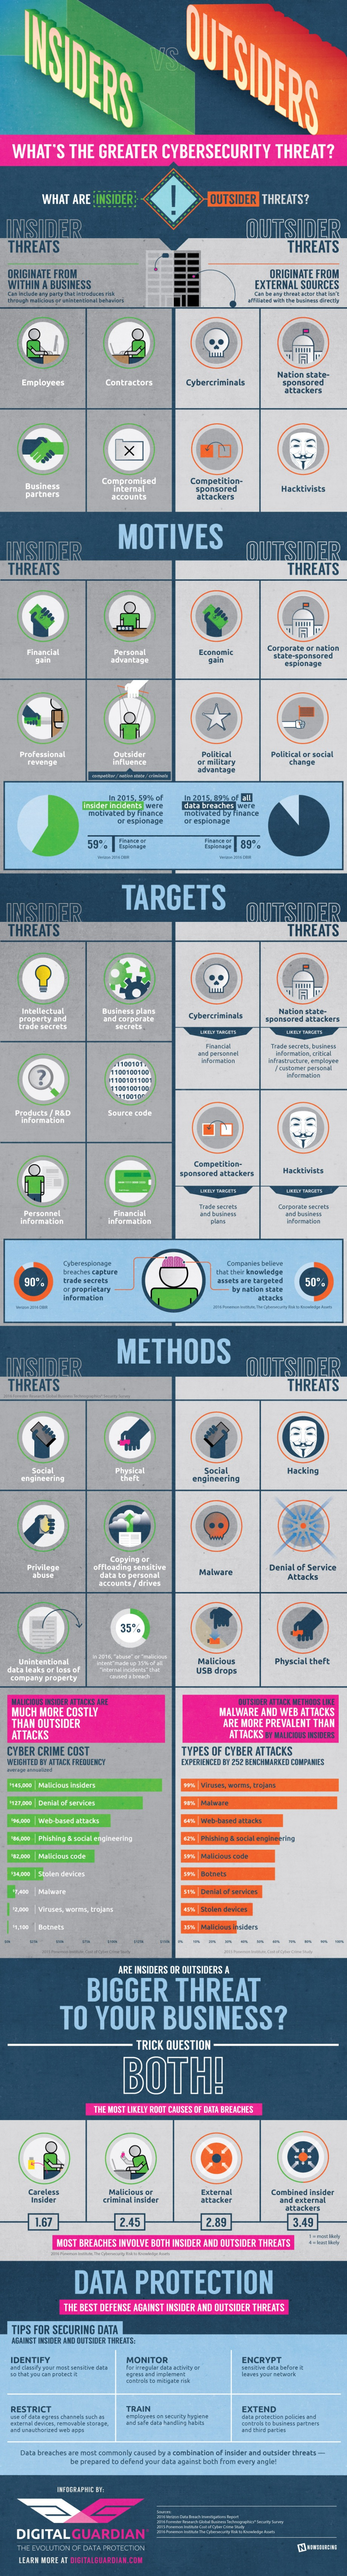 cybersecurity-threats-infographic